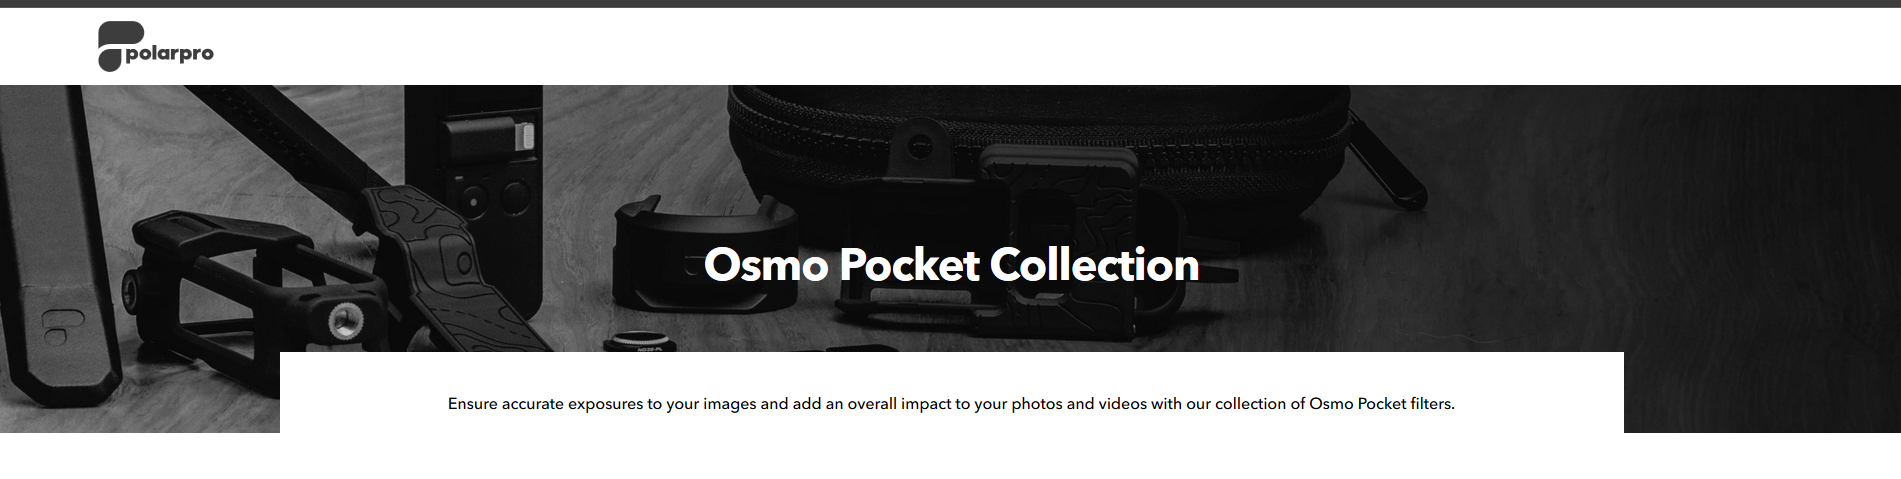 Osmo-Pocket-Landing